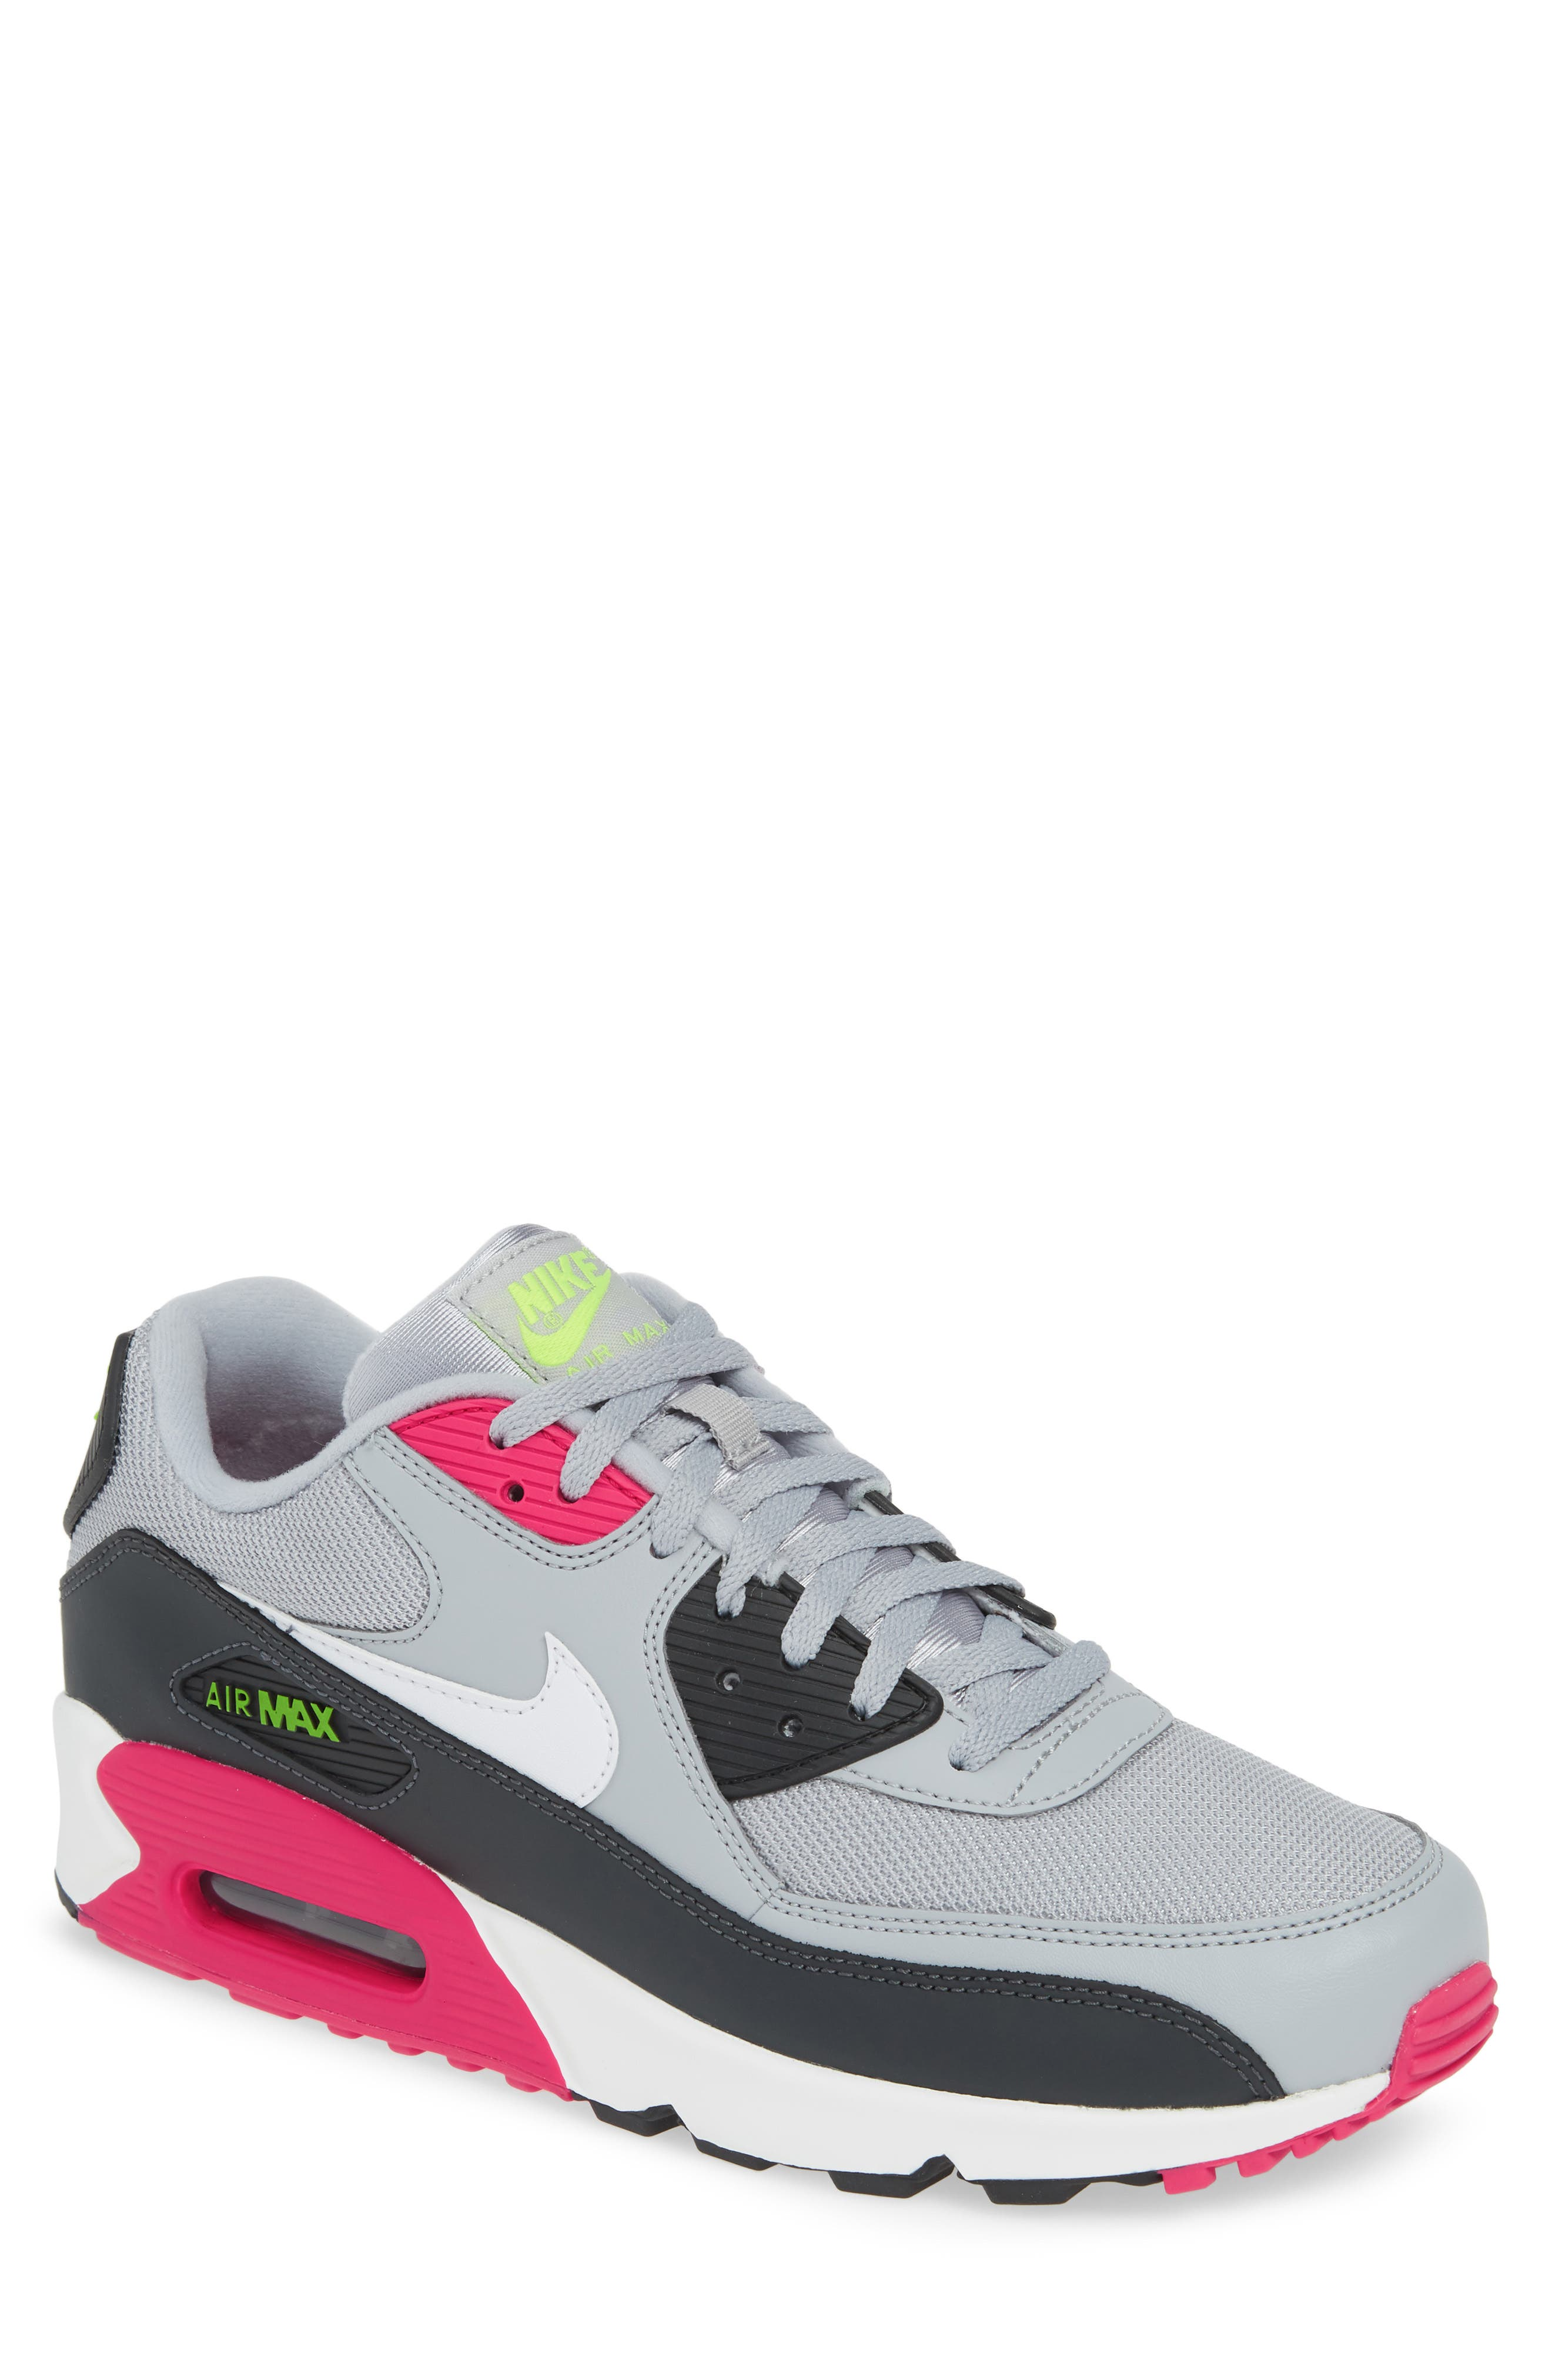 NIKE, Air Max 90 Essential Sneaker, Main thumbnail 1, color, WOLF GREY/ WHITE/ PINK